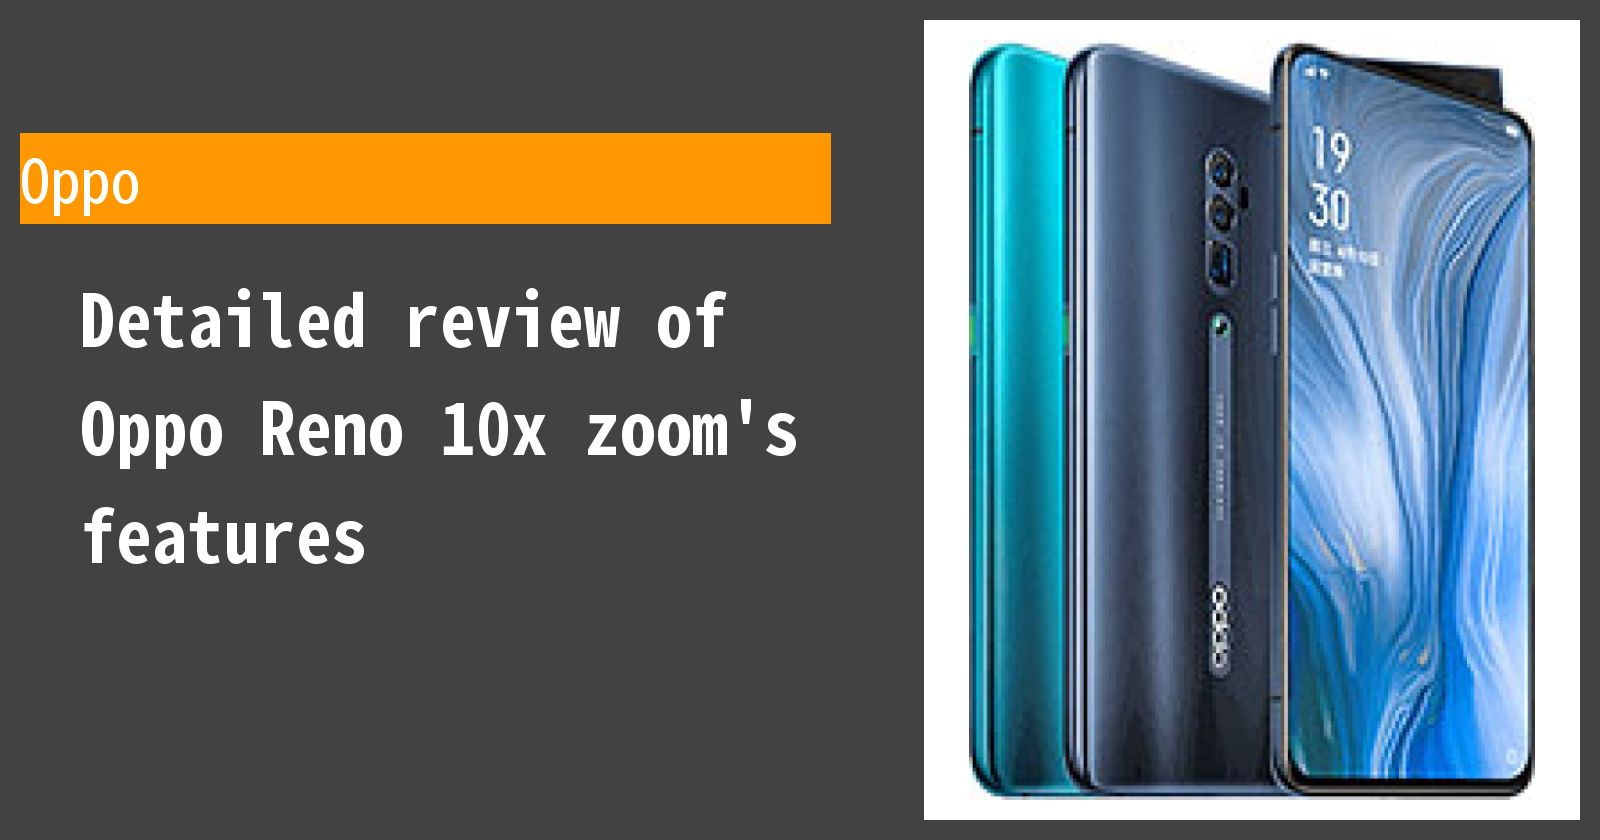 Detailed review of Oppo Reno 10x zoom's features